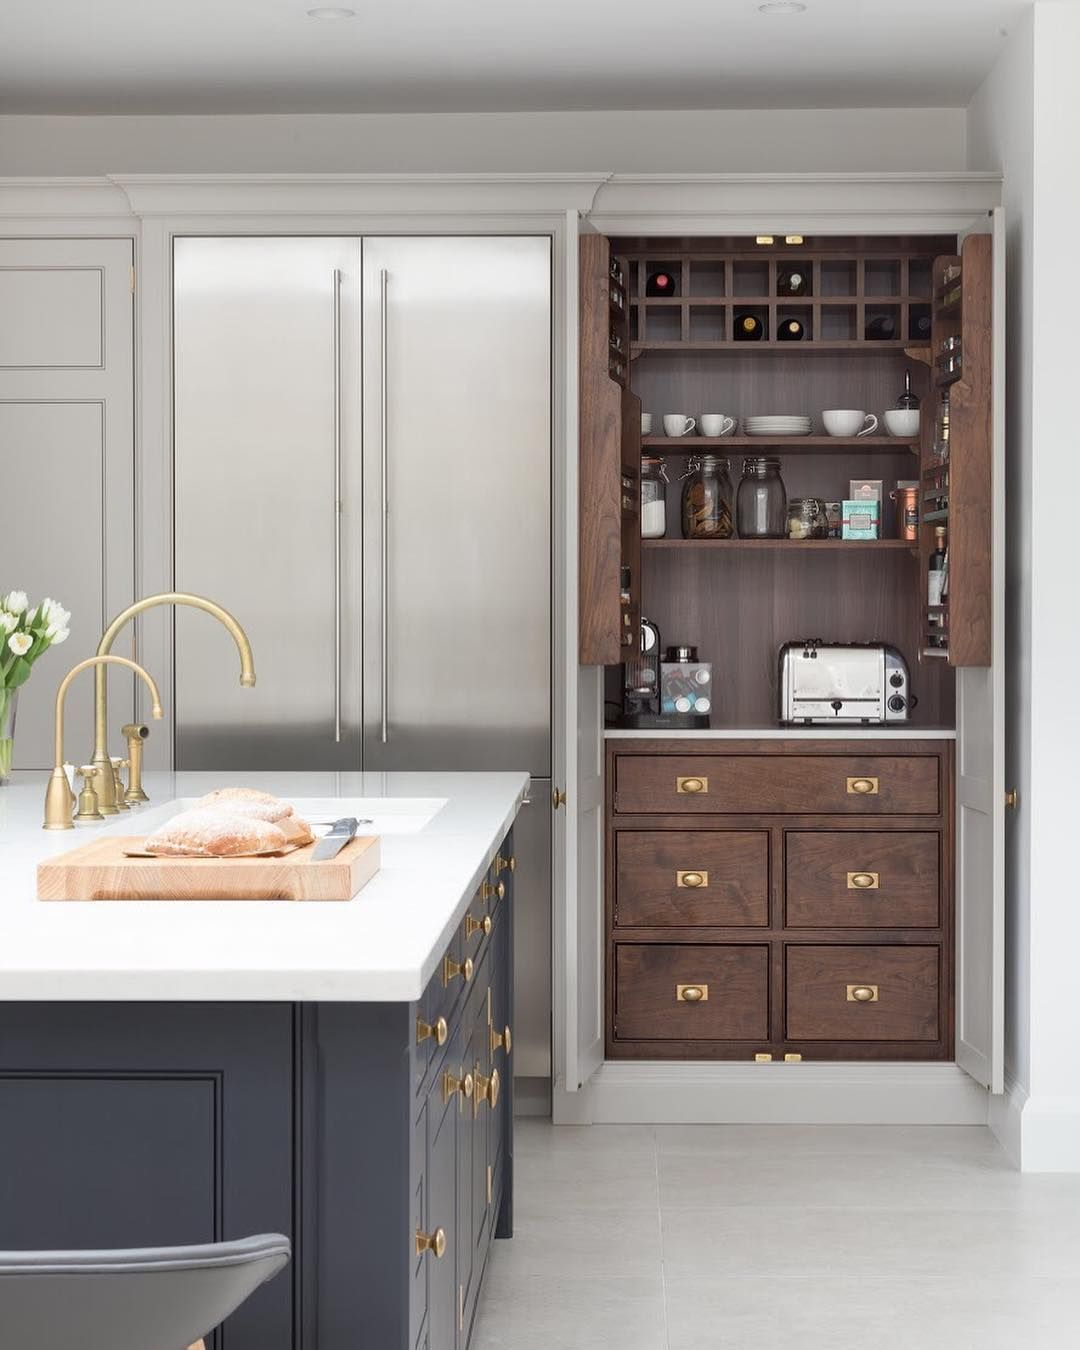 Humphrey Munson On Instagram A Breakfast Pantry Cupboard Positioned Right Next To The Gaggenau French Door F Hidden Kitchen Kitchen Design Home Decor Kitchen